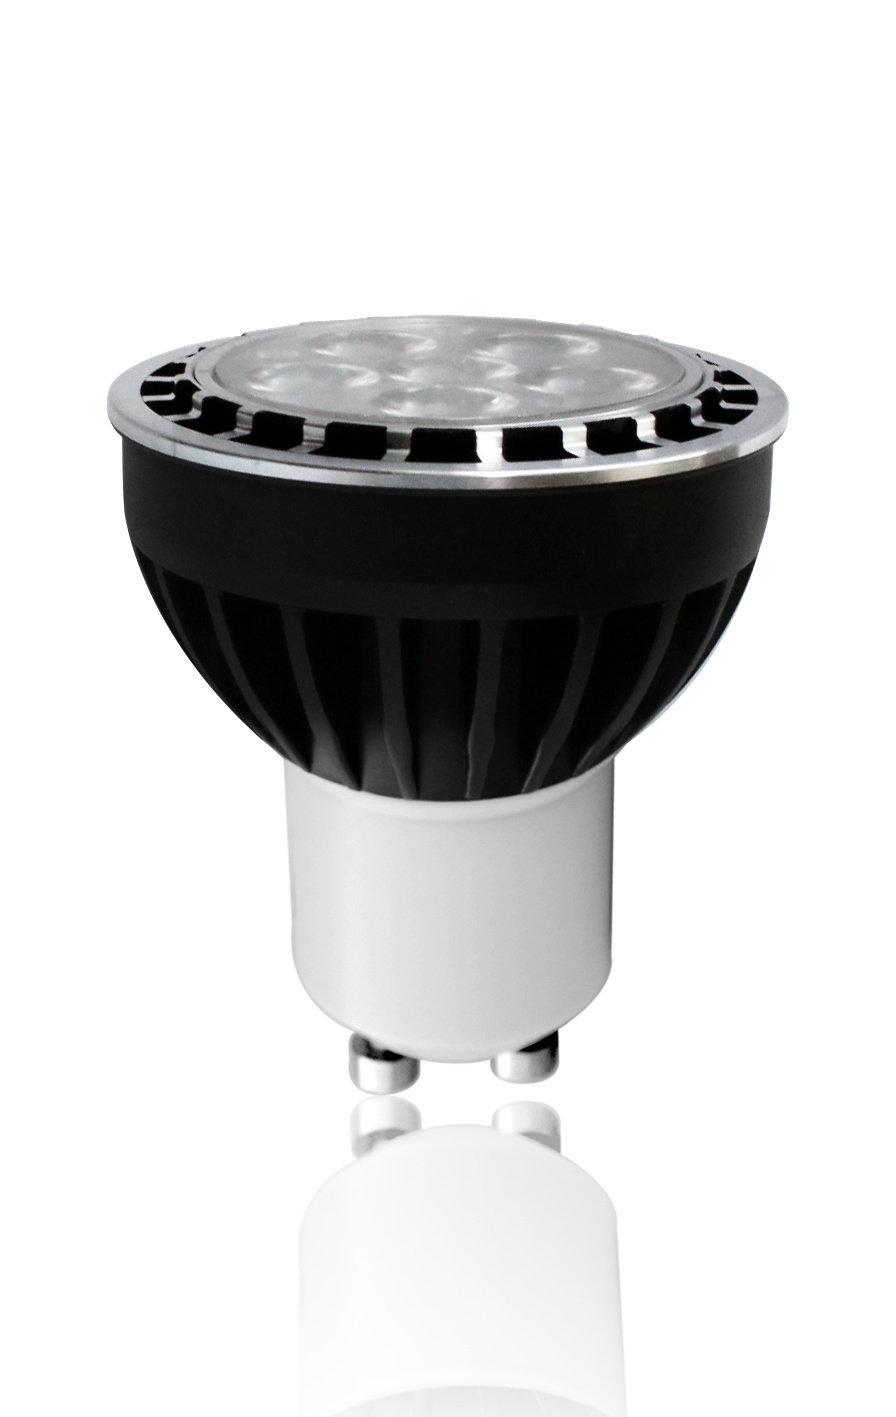 GU10 LED Lamps for Indoor Application